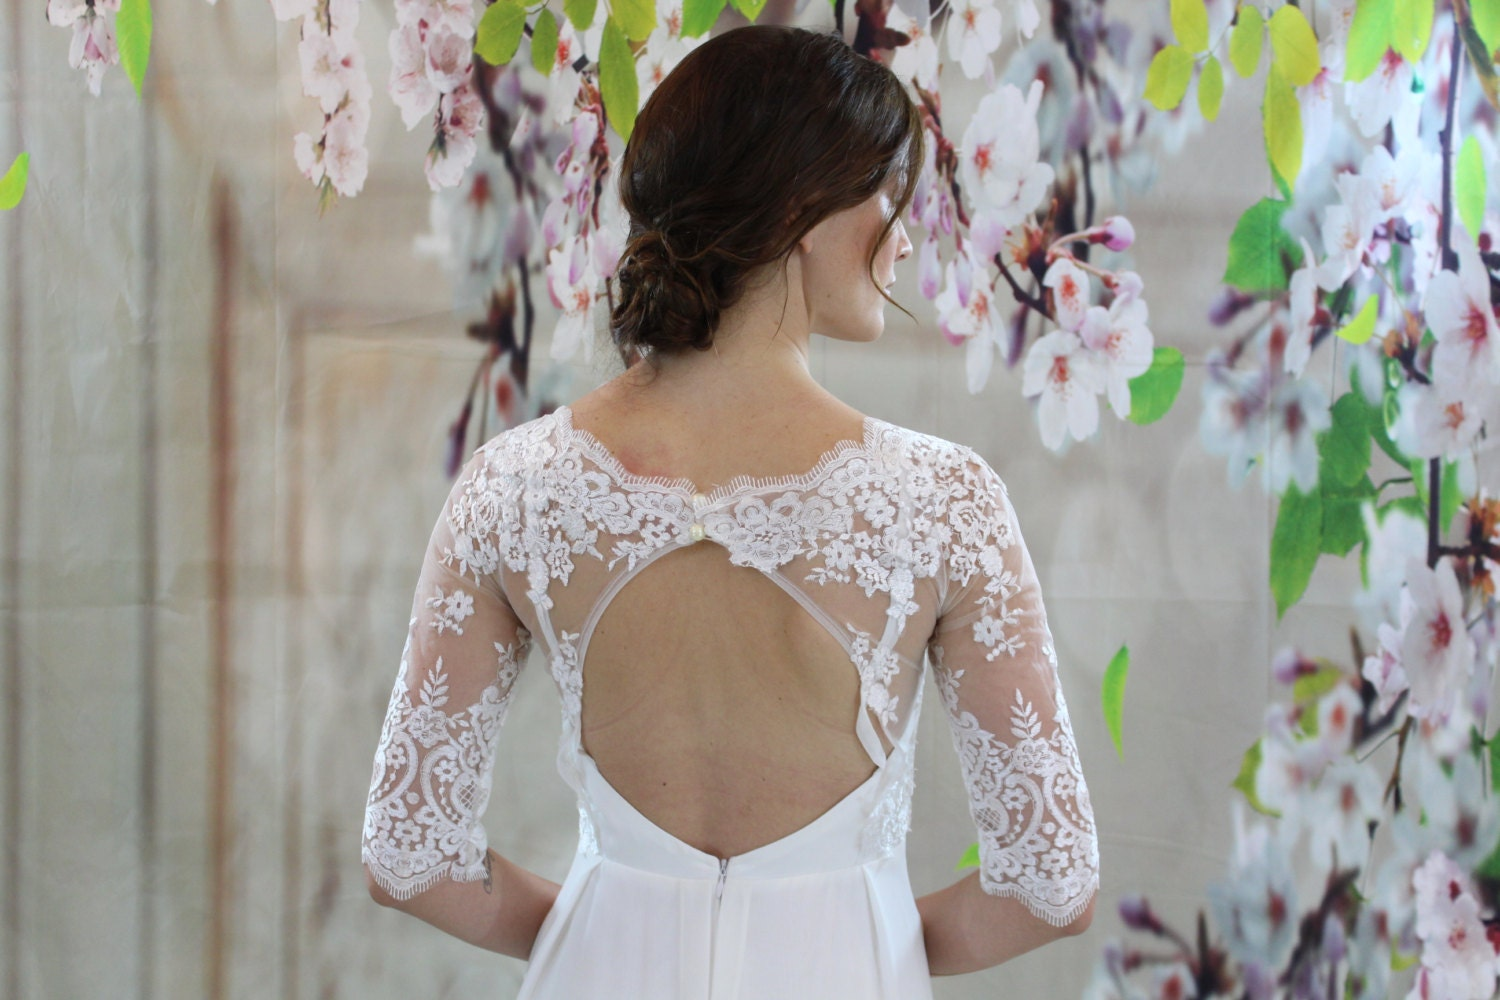 Simple Wedding Dresses With Lace Sleeves: Simple Lace Half Sleeves Chiffon Dress Beach Wedding Dress